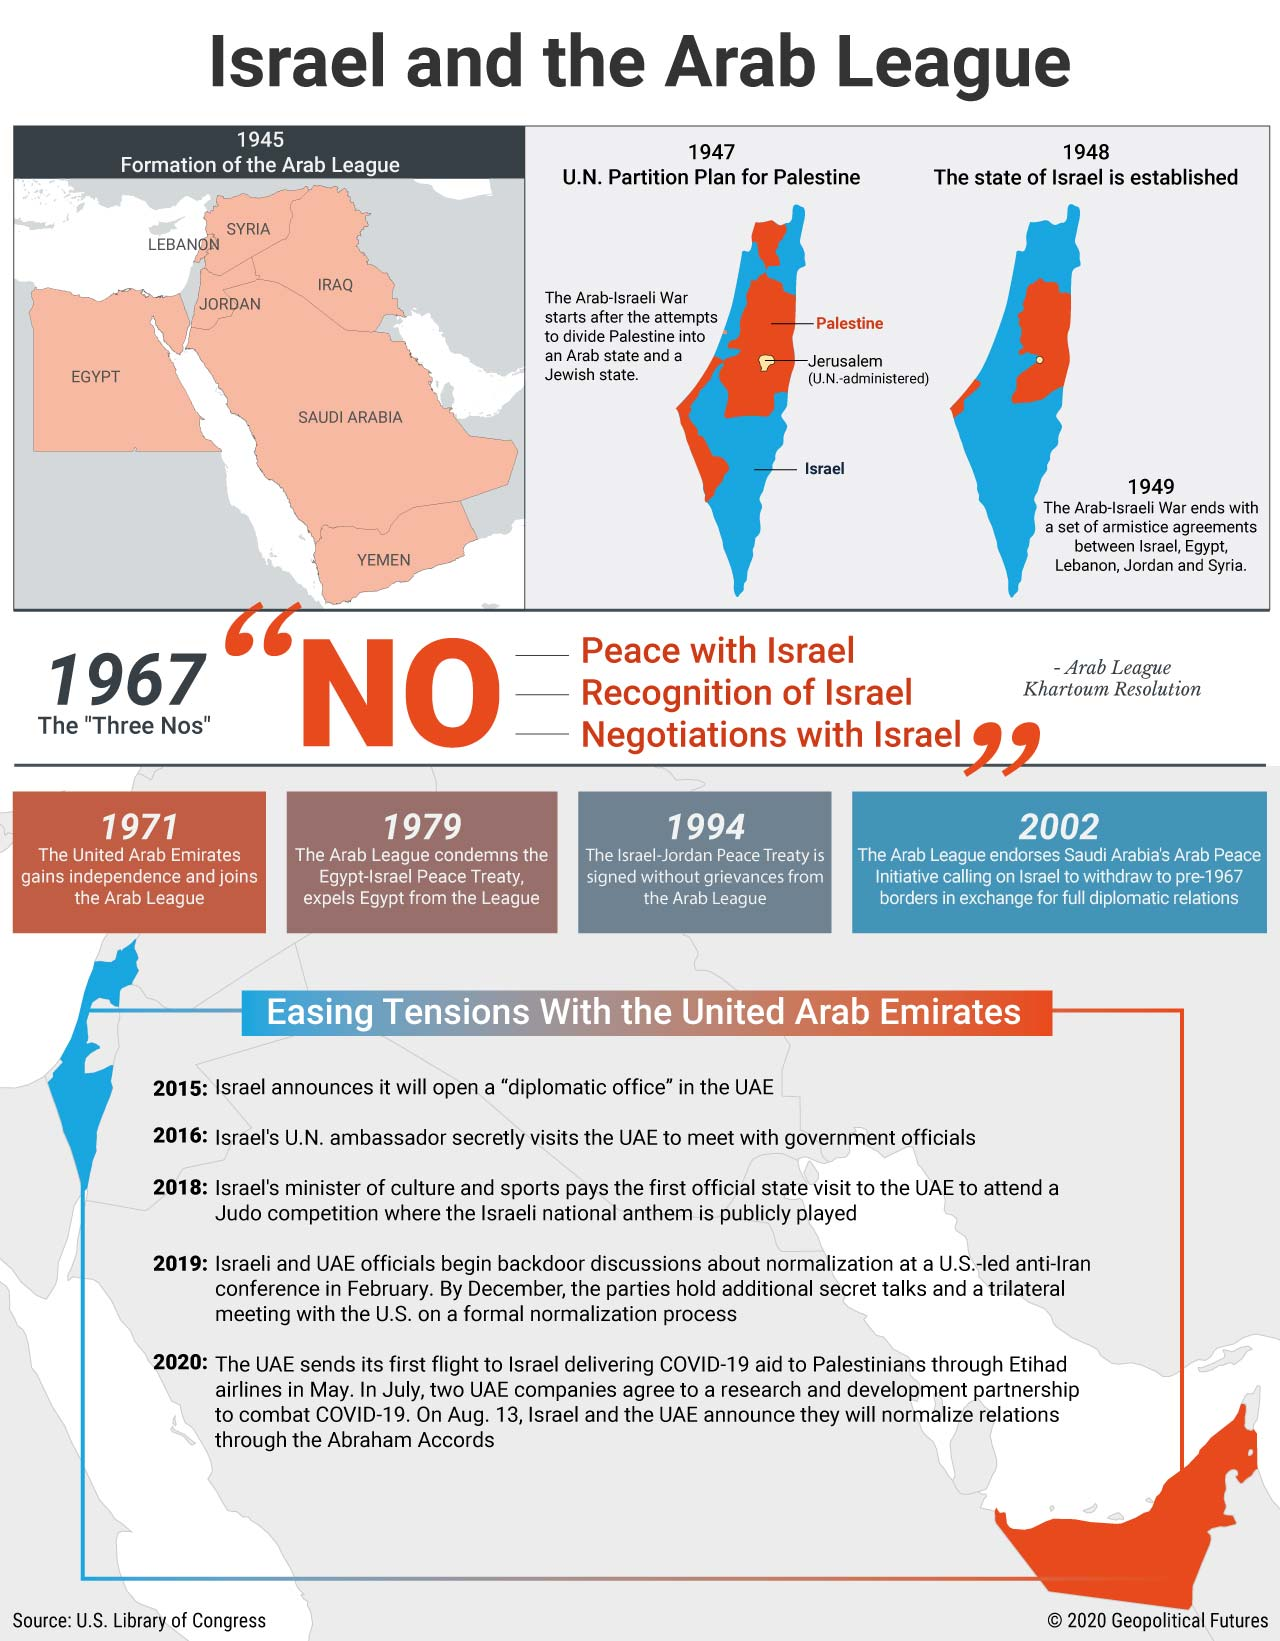 Israel and the Arab League